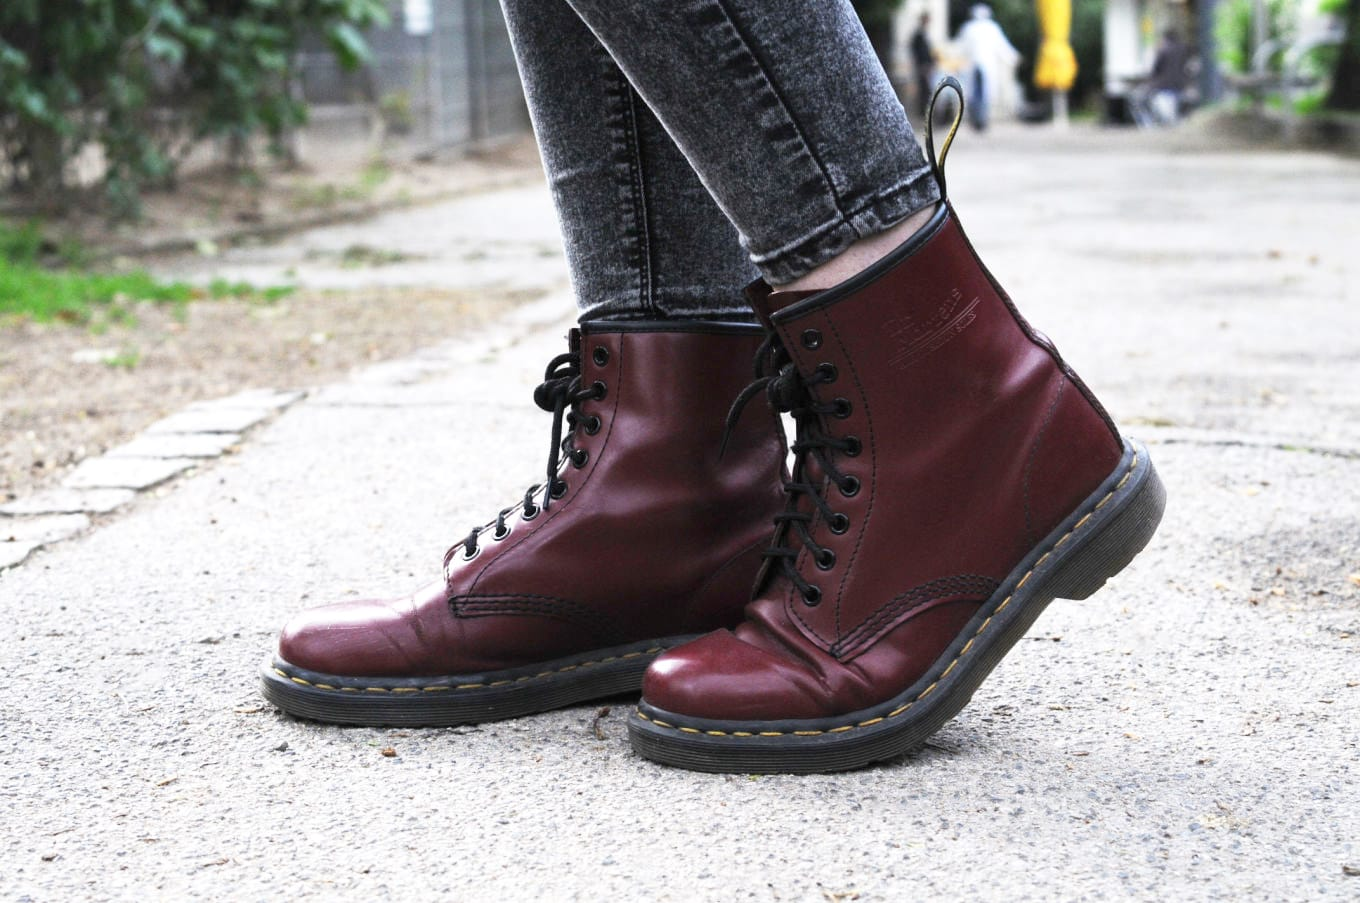 Maroon Doc Martens boots with black laces on campus